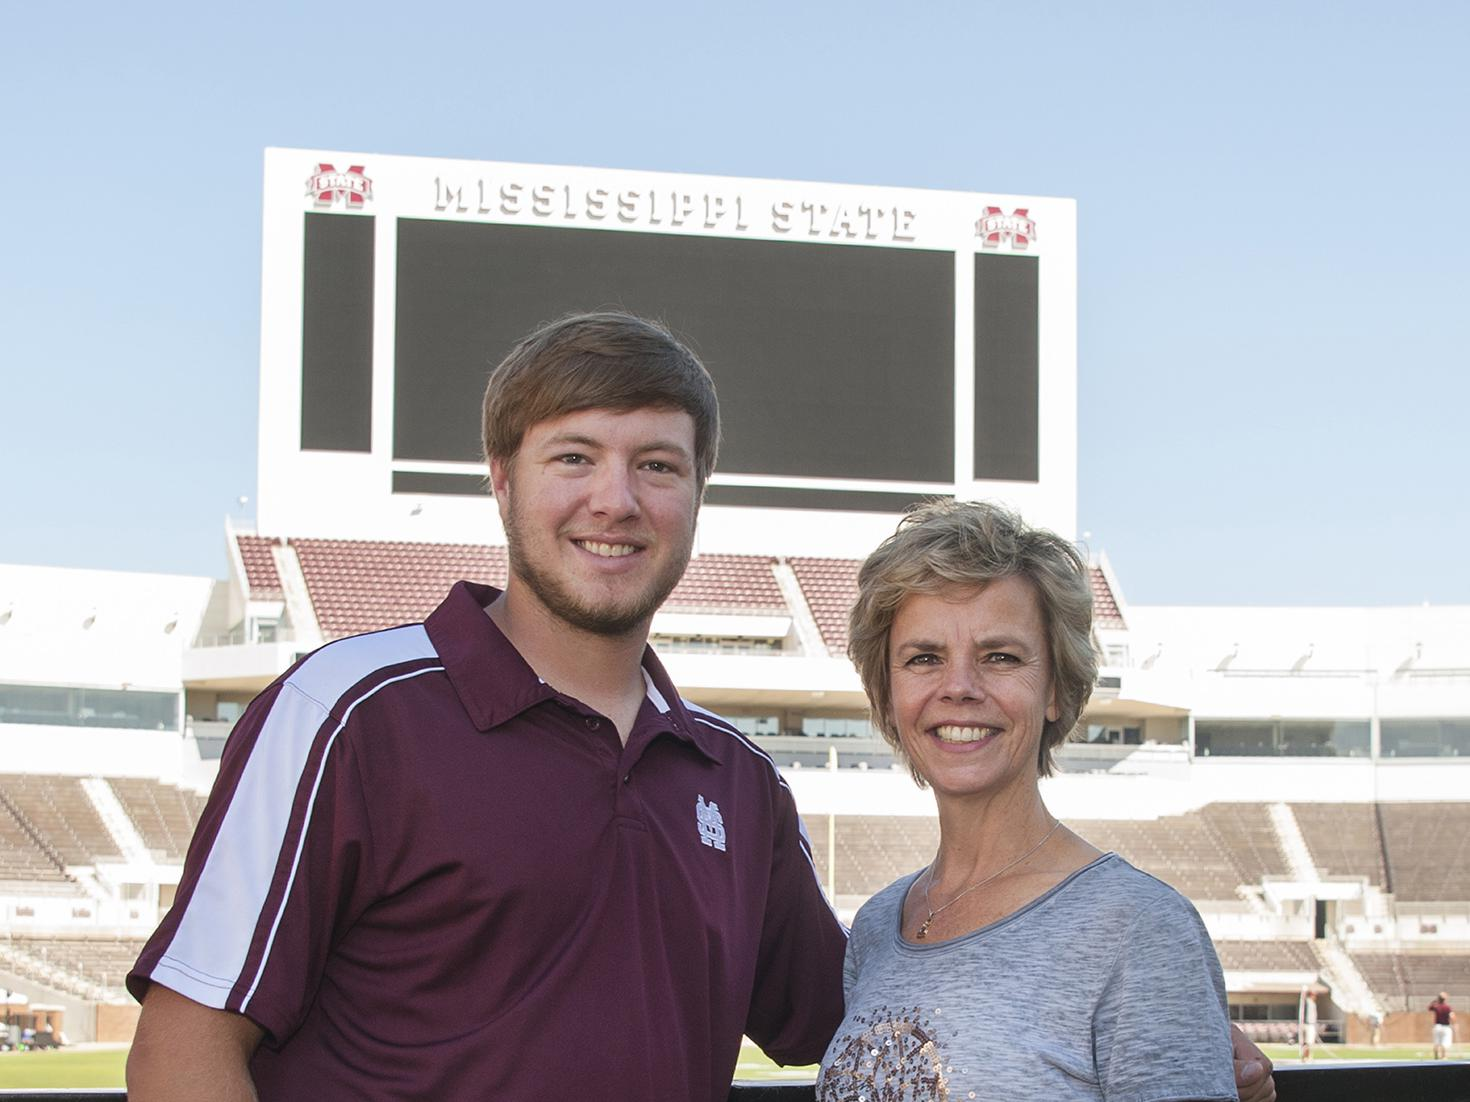 Marjan de Regt, right, a Washington County row crop farmer from the Netherlands, visits her son, Skyler, an agribusiness major at Mississippi State University. (Photo by MSU Extension Service/Kat Lawrence)